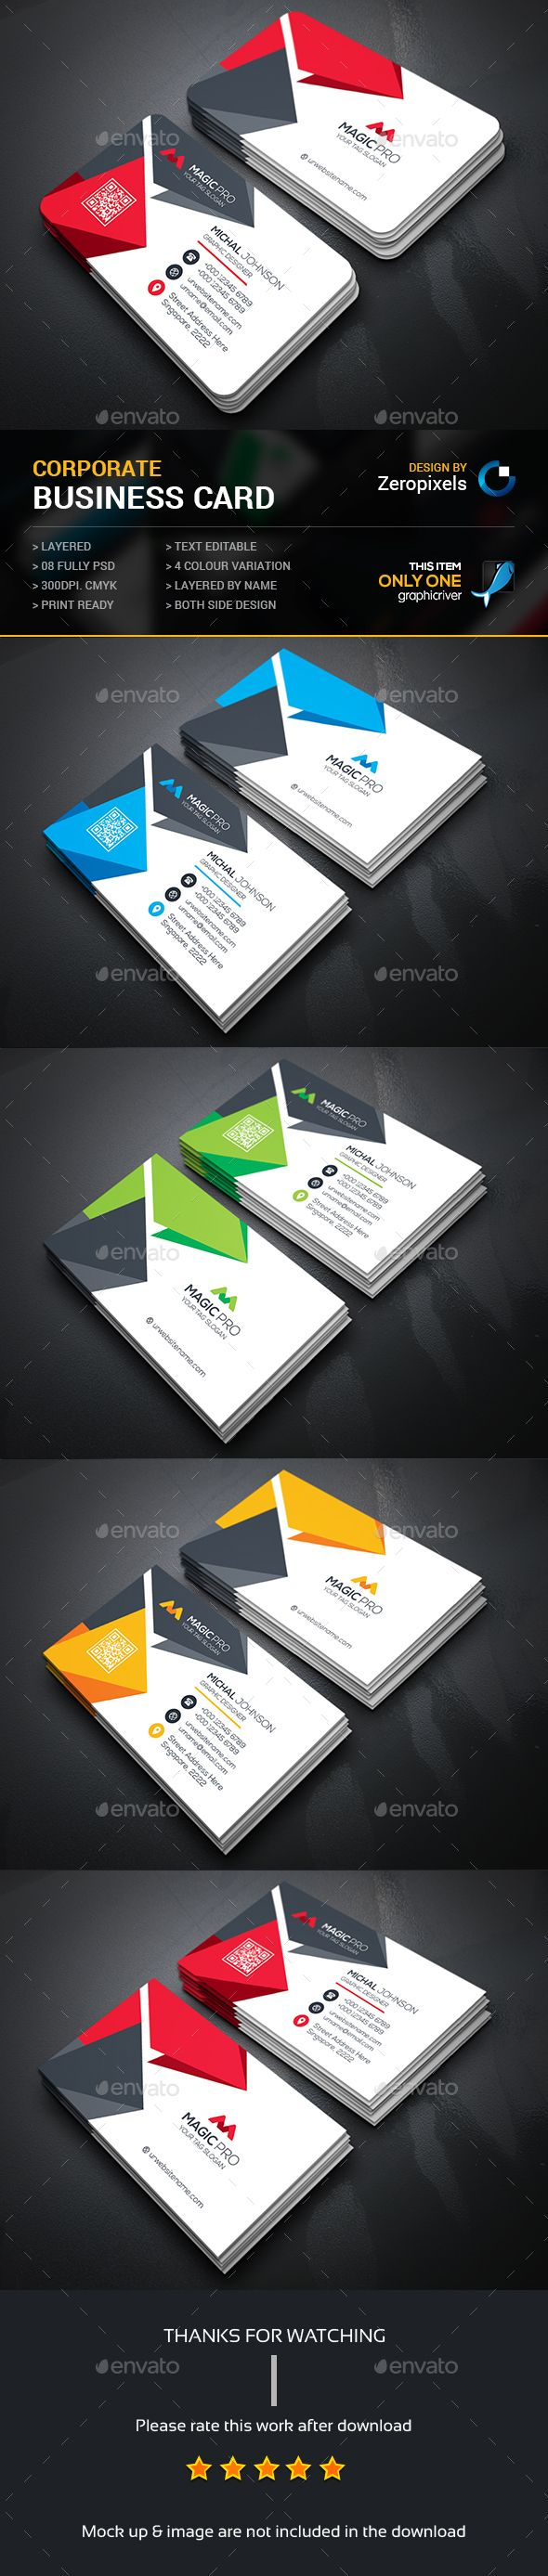 1109 best business card images on pinterest business cards creative business card magicingreecefo Gallery